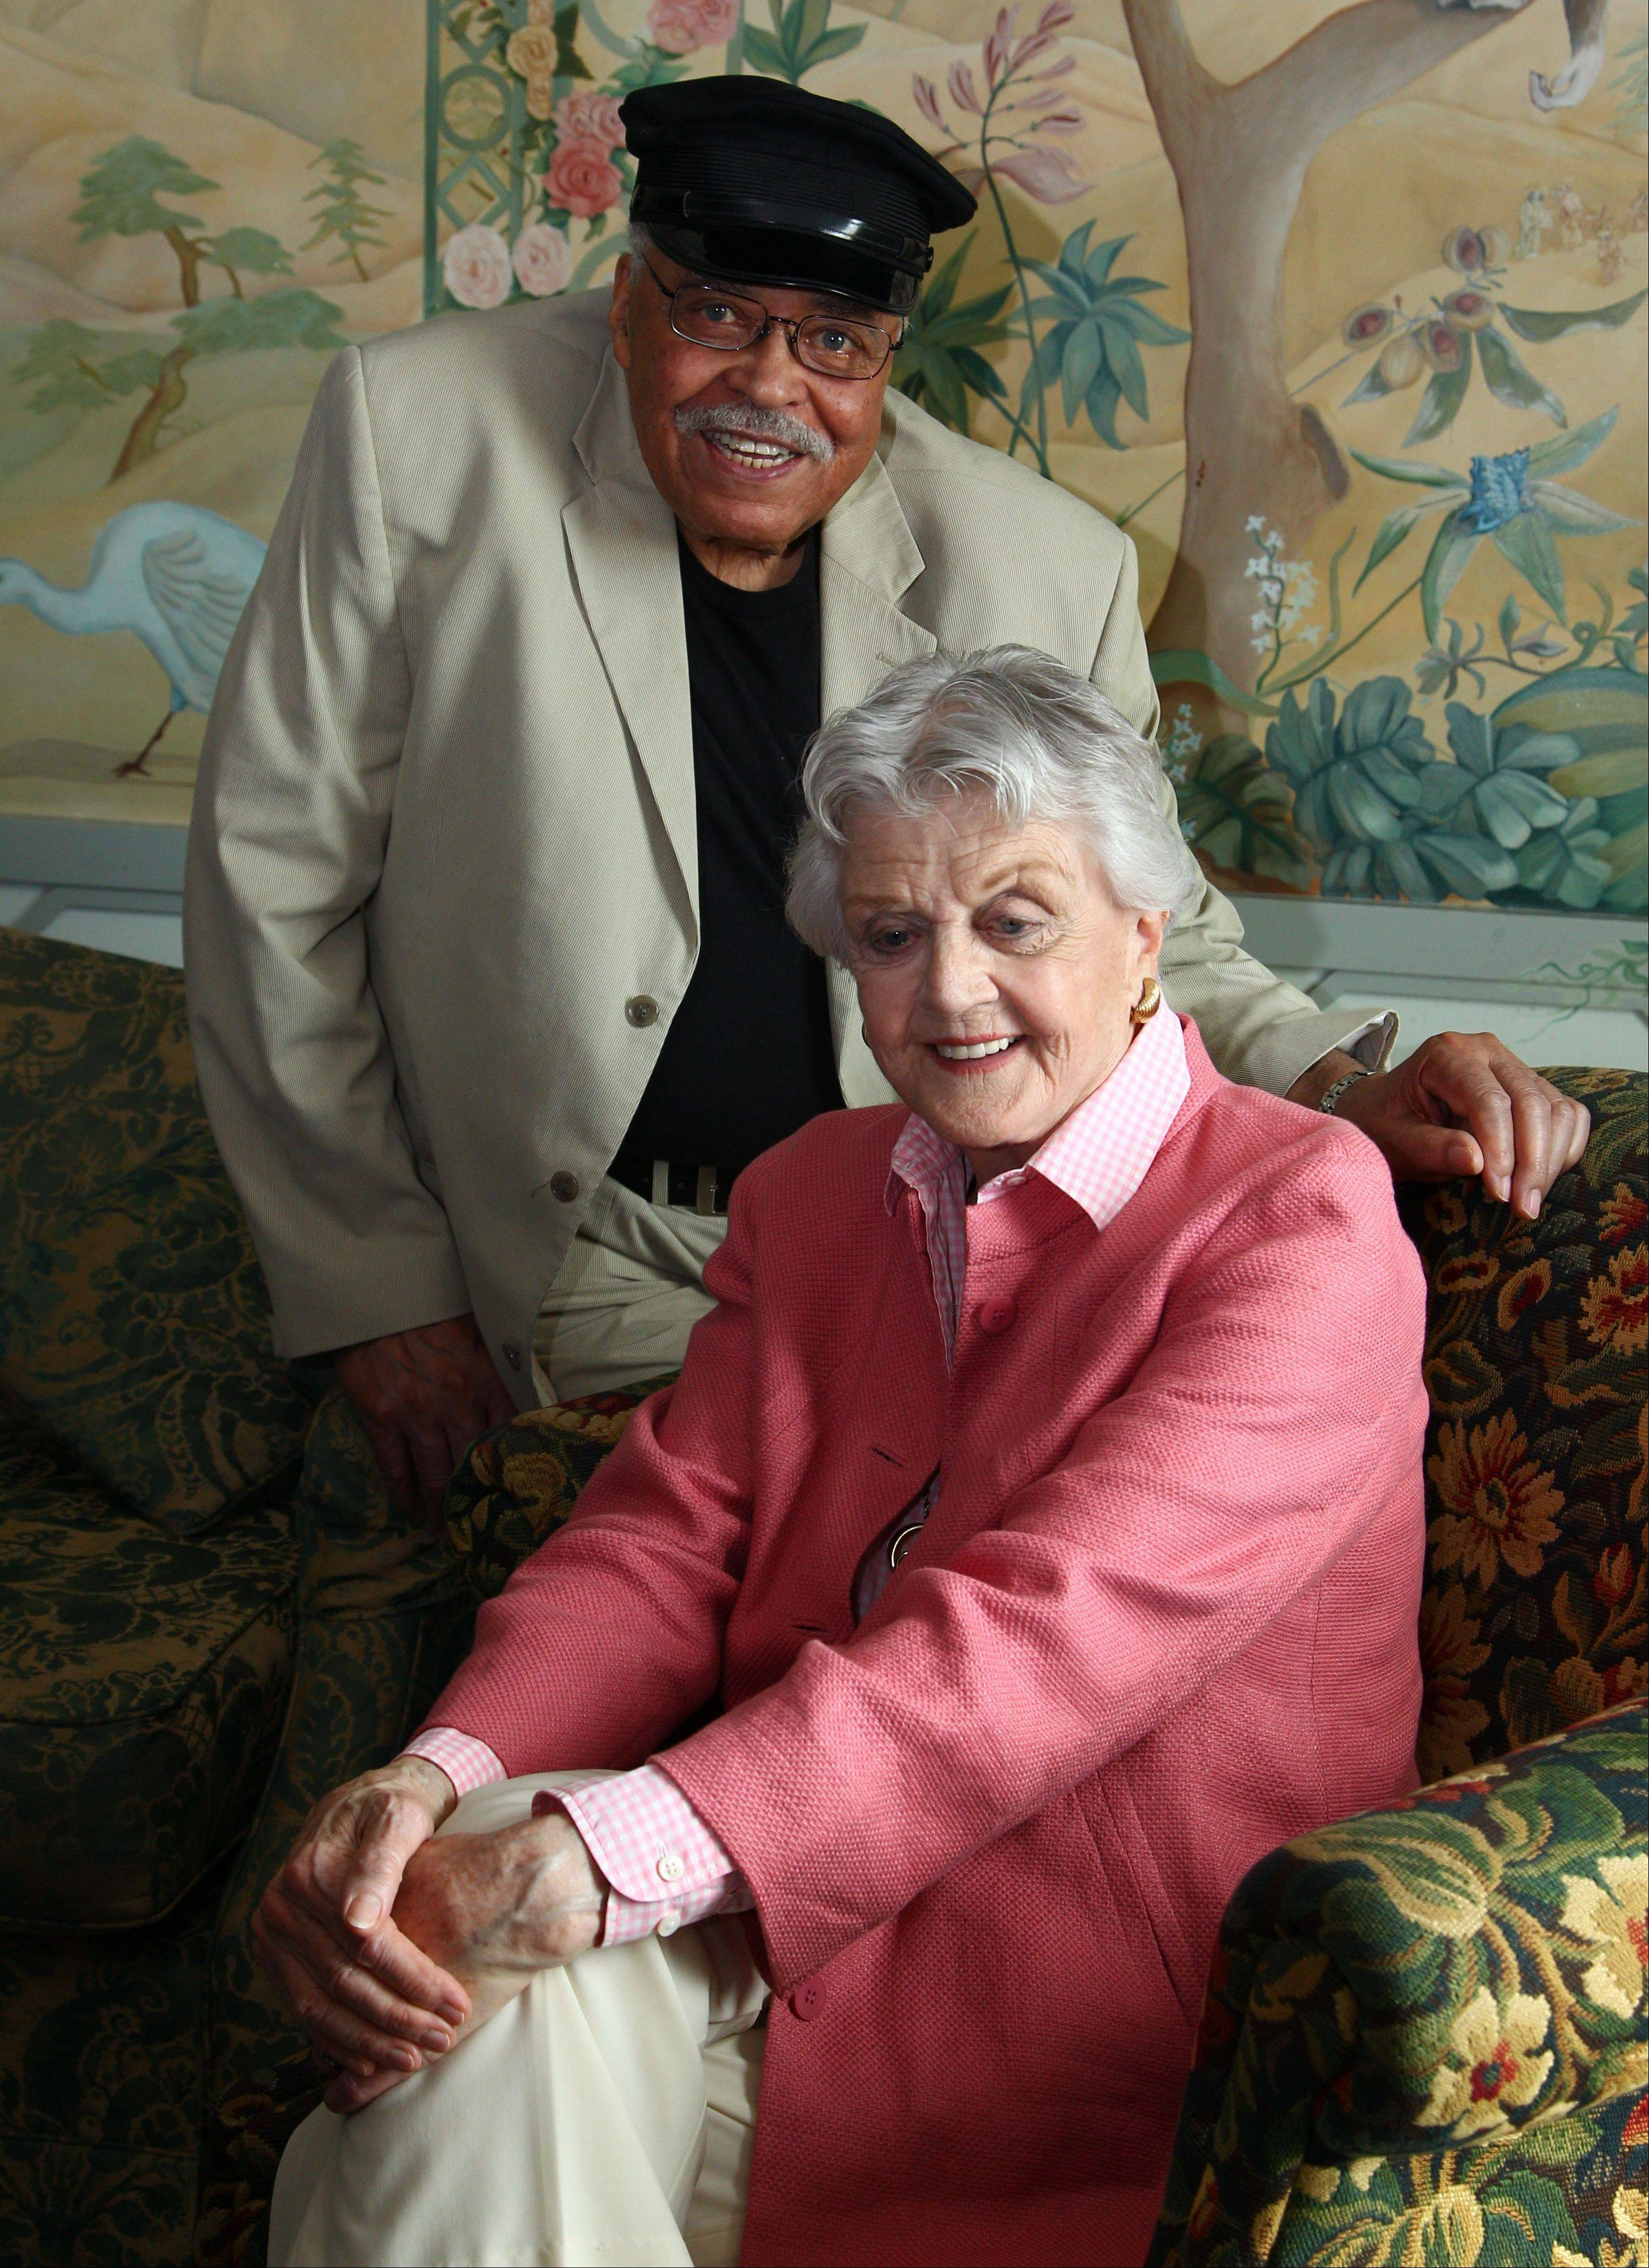 James Earl Jones and Angela Lansbury, in Australia to star in a touring production of Alfred Uhry�s Pulitzer-Prize winning play �Driving Miss Daisy,� credit the thrill of performing with their seemingly endless supply of energy, which has propelled them throughout their decades-long careers.